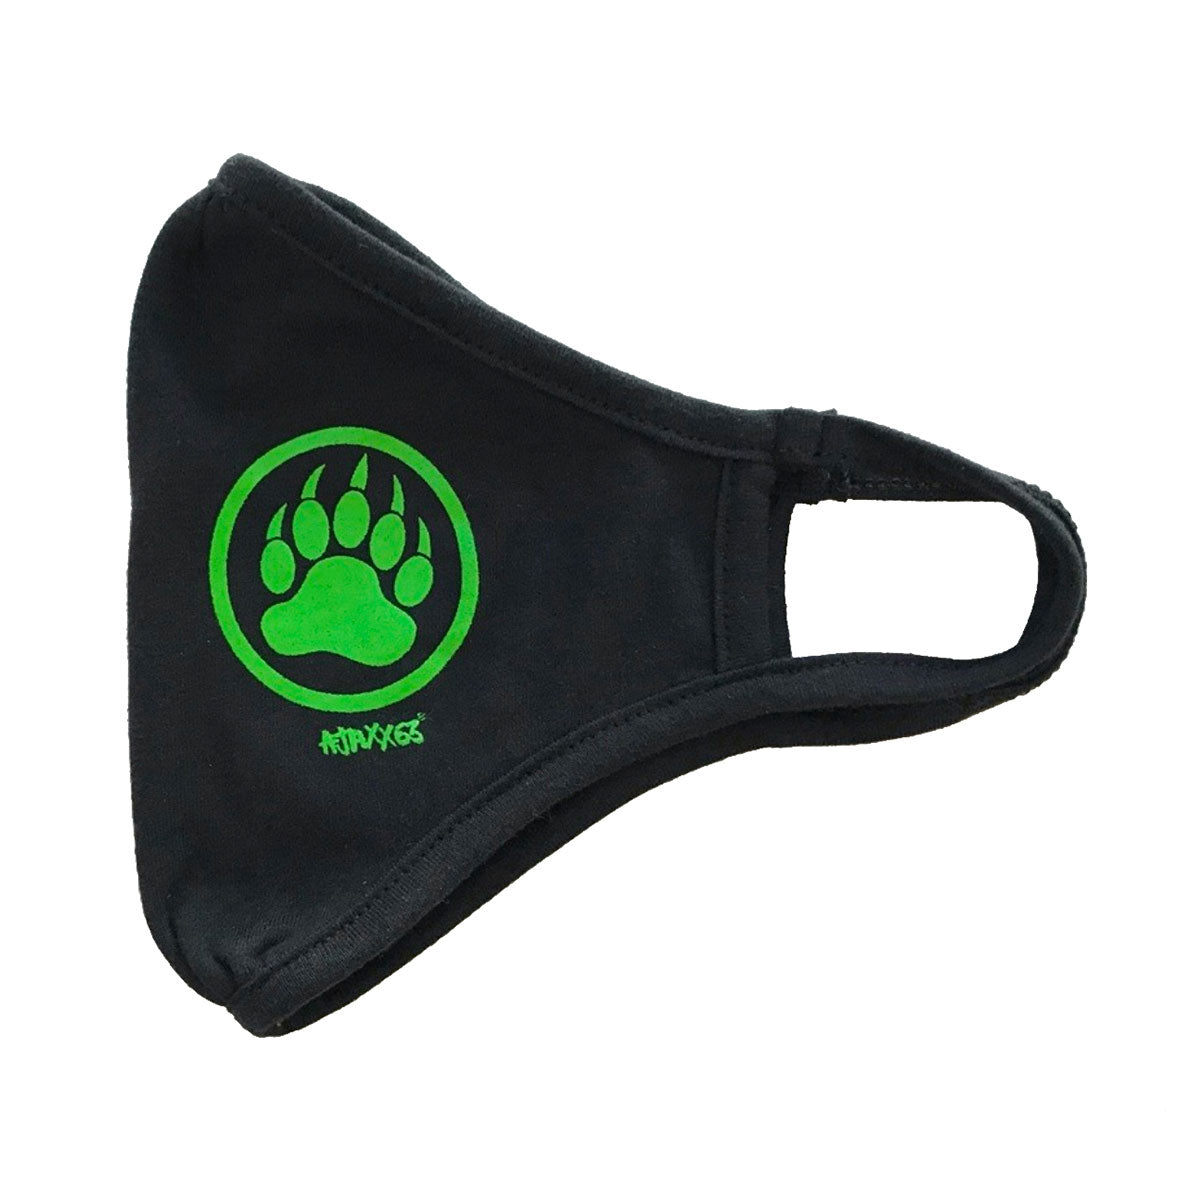 Shop Ajaxx63 Bear Paw Sports Face Mask 1 available at MensUnderwear.io